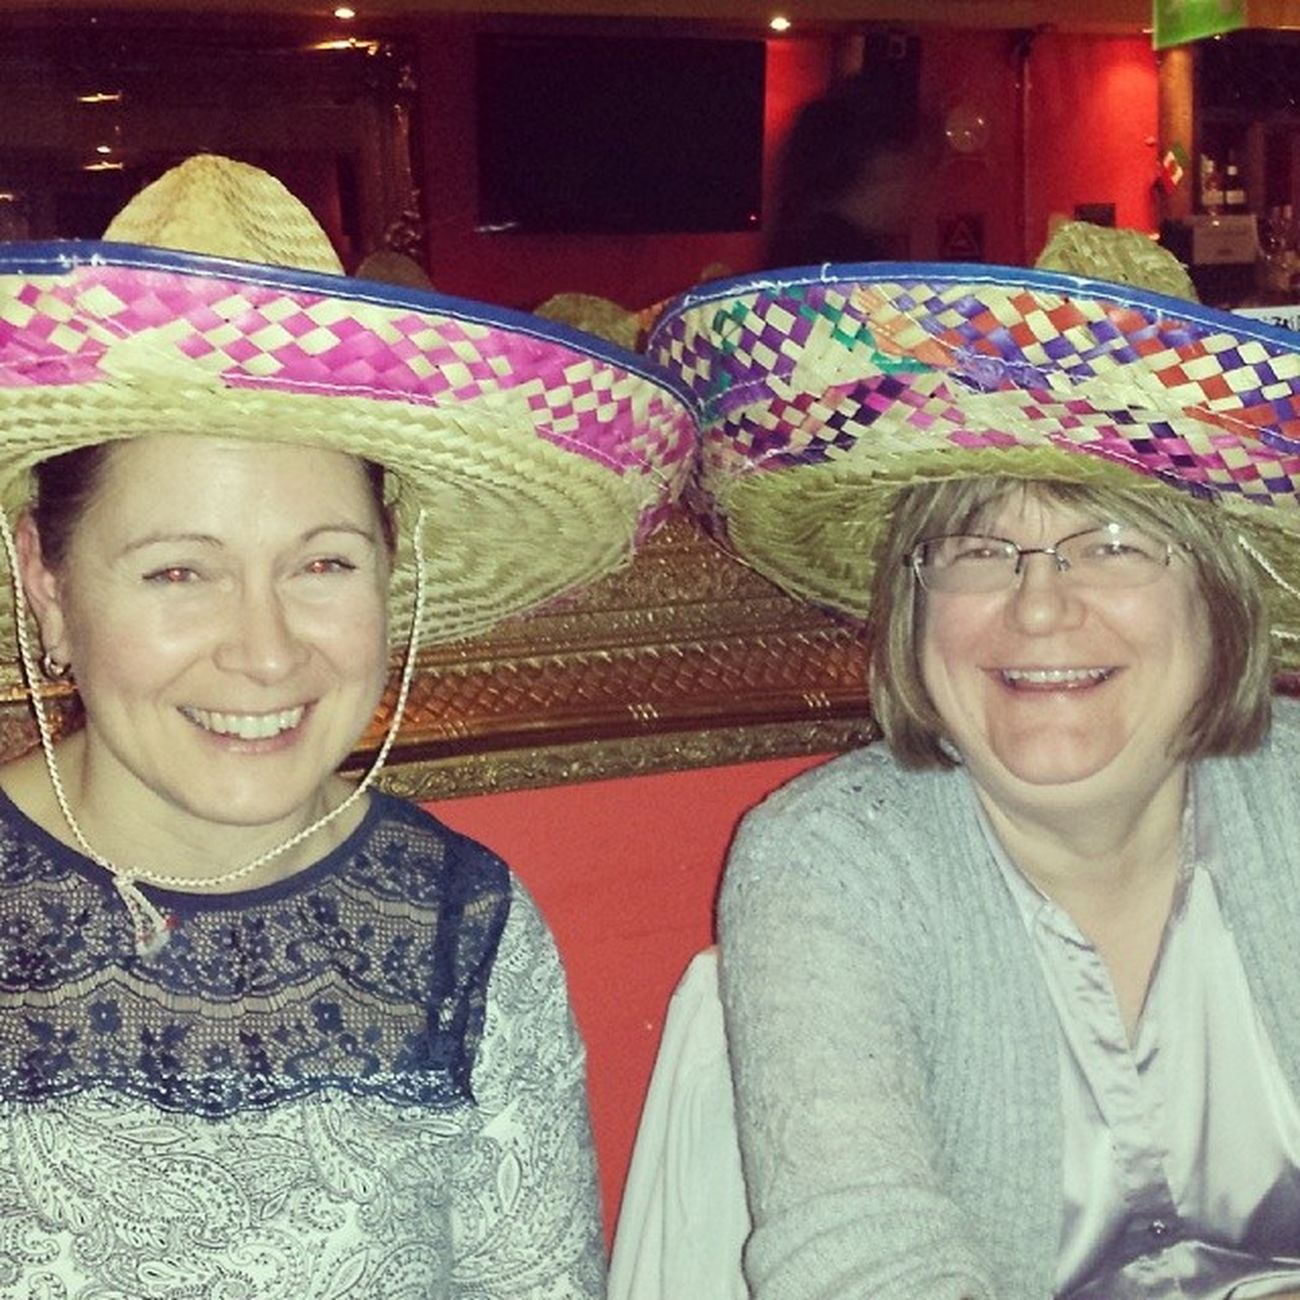 Mexican Night at Panchos in Rayleigh